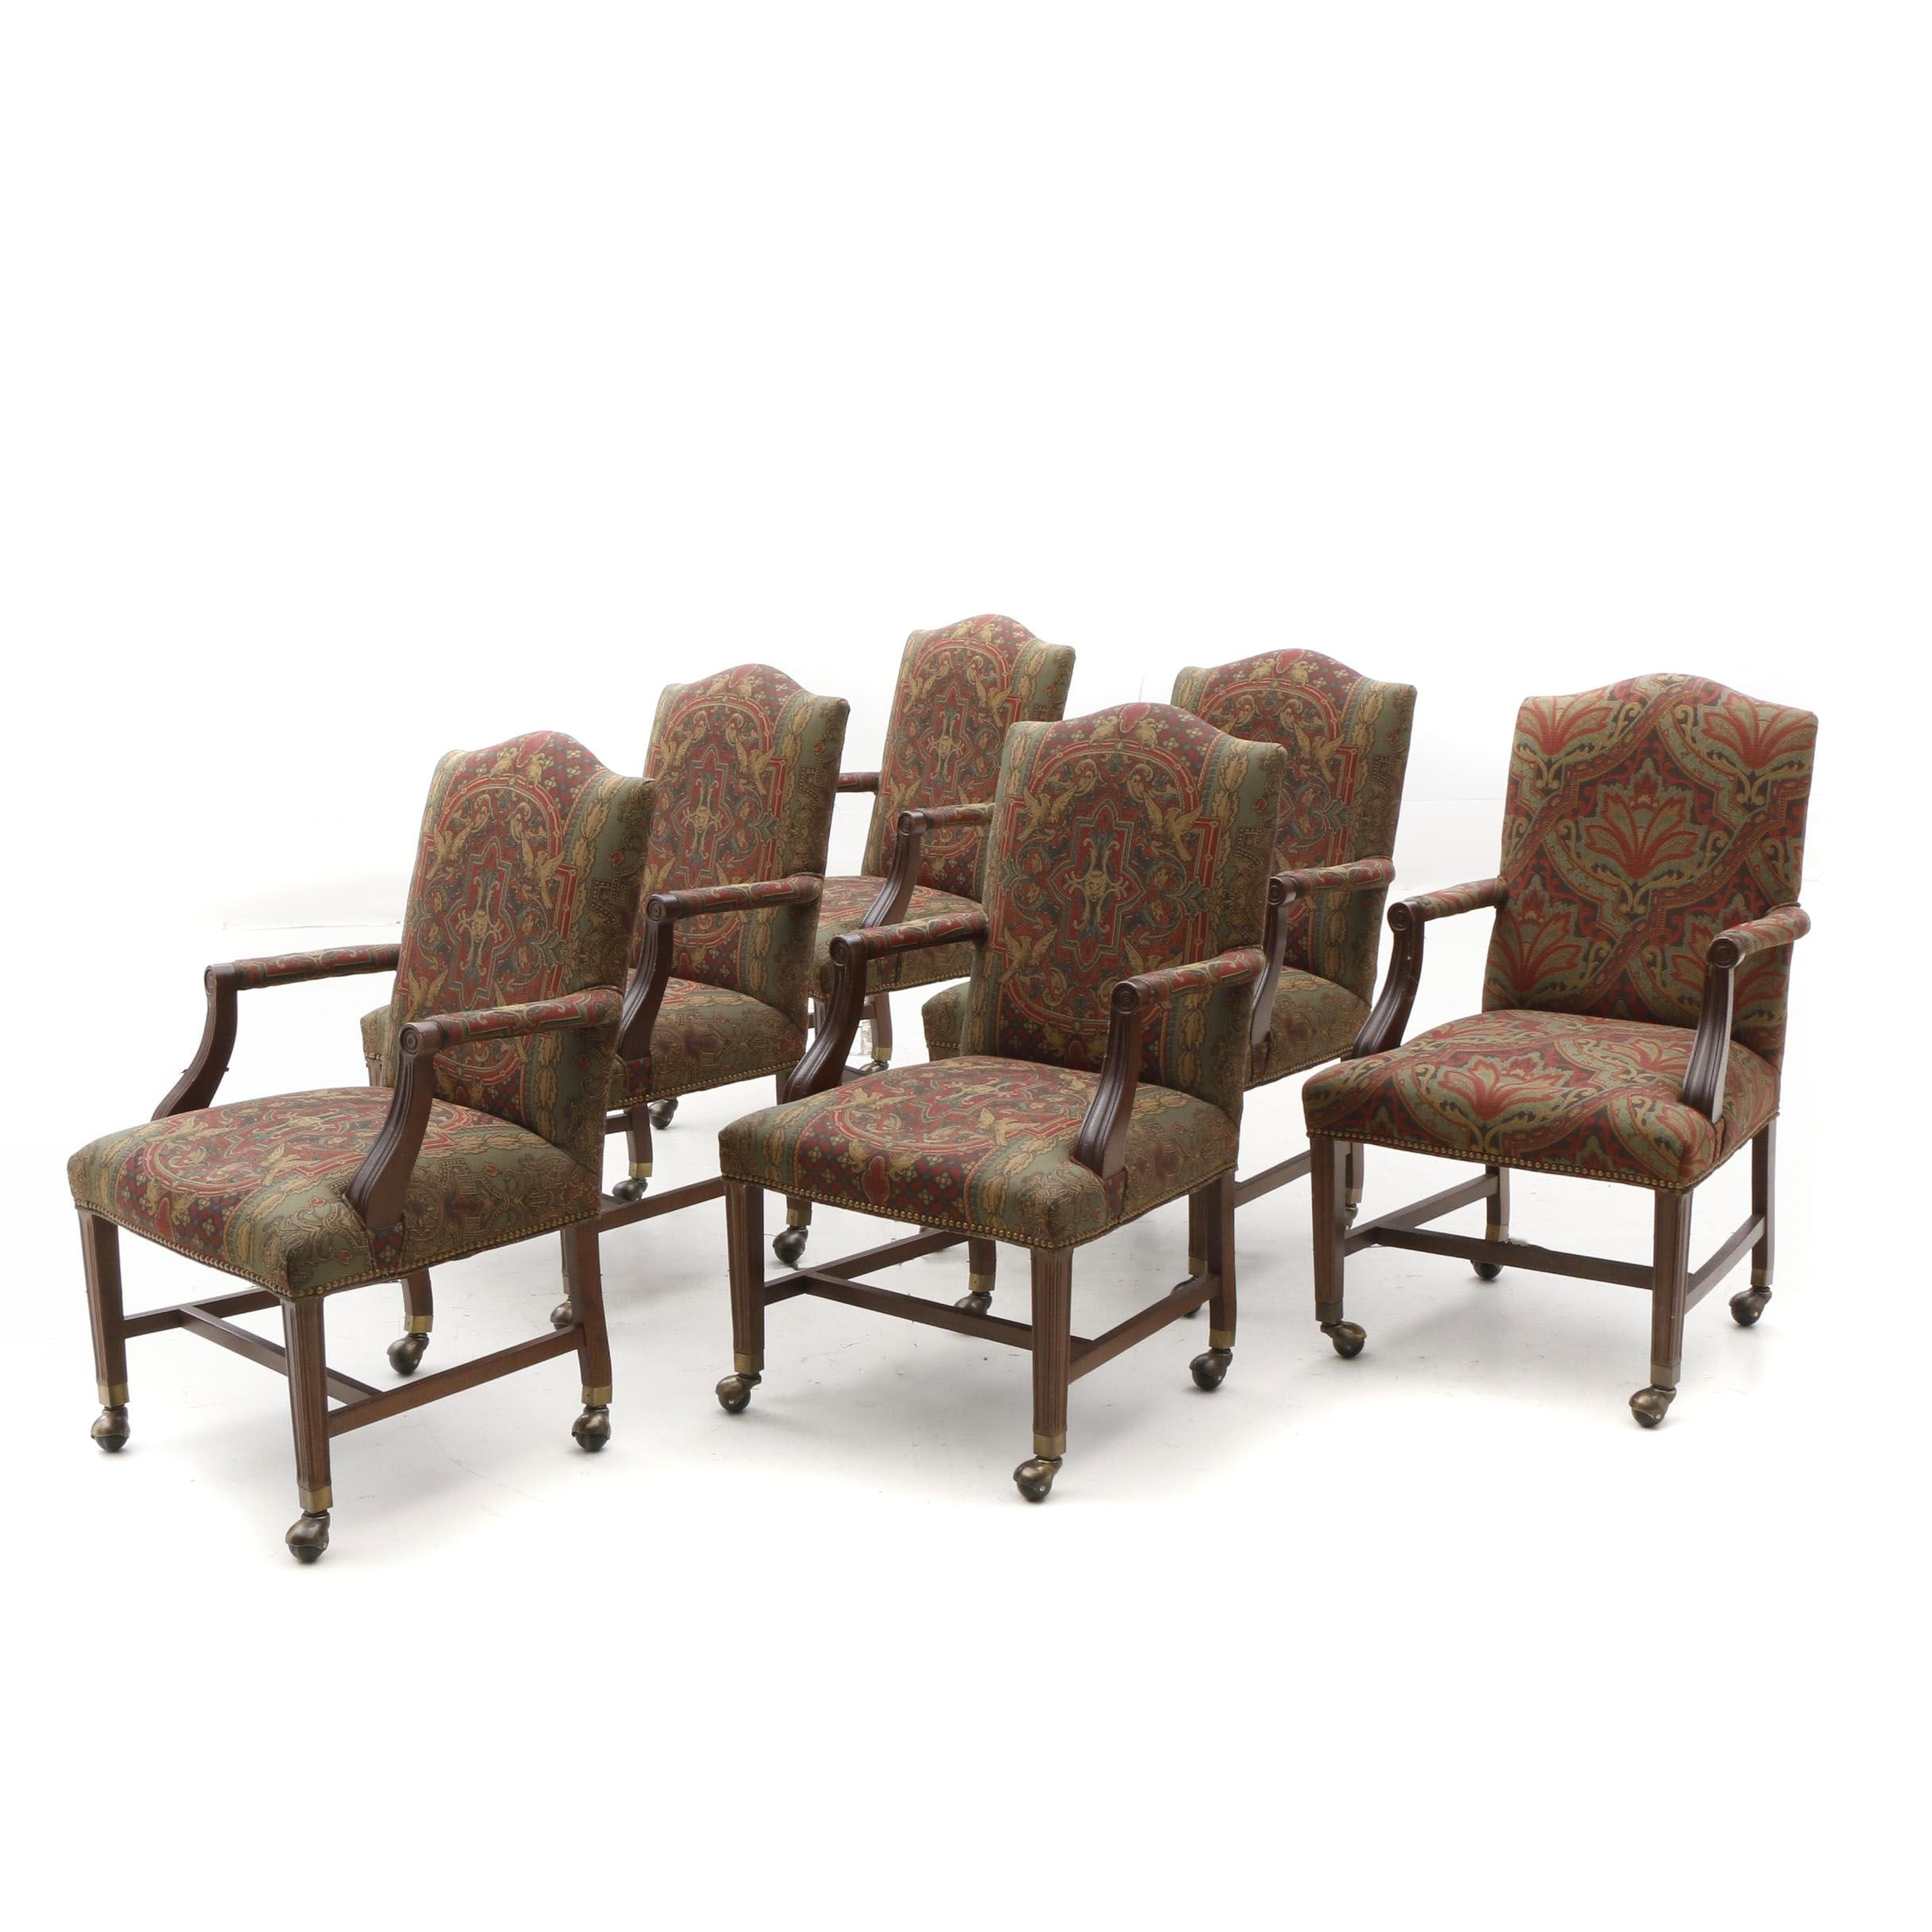 Upholstered Mahogany Armchairs with Nailhead Trim